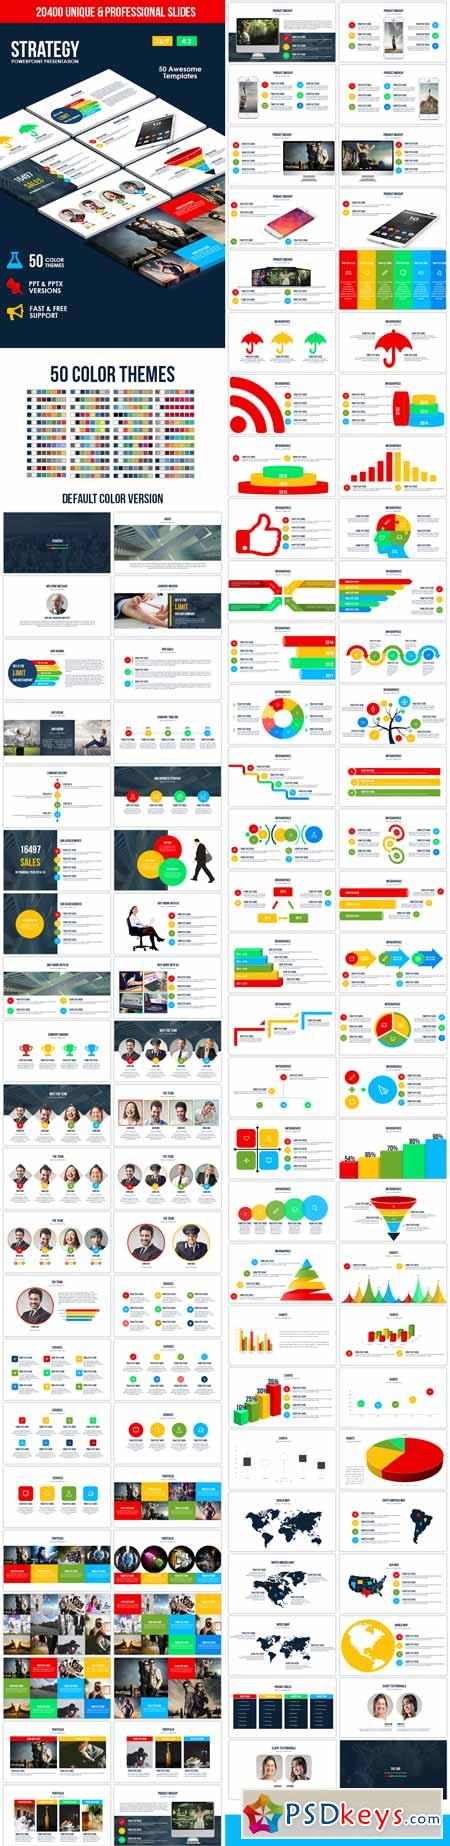 Strategy PowerPoint Template 13591744